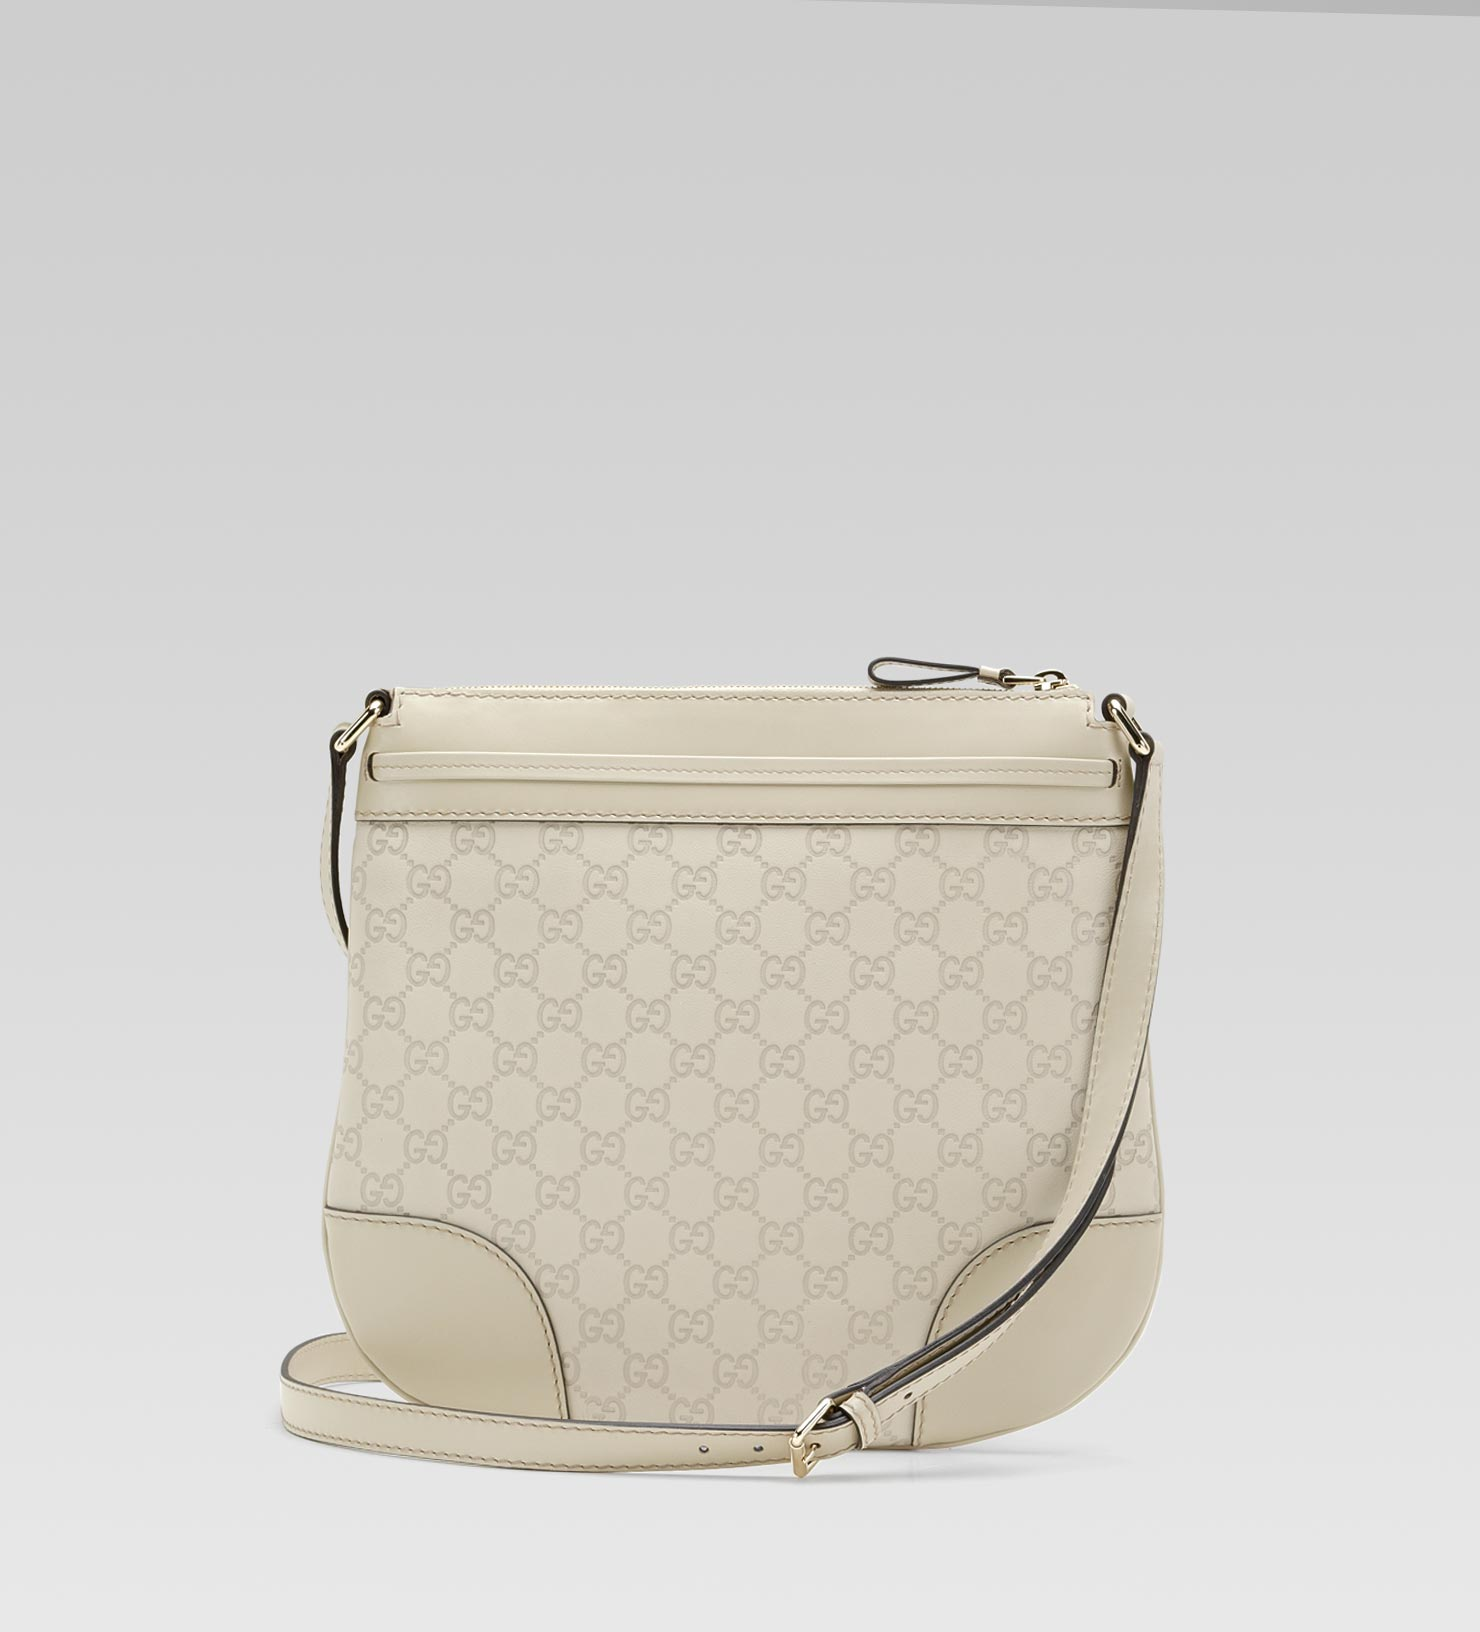 8302e0cebbb7 Lyst - Gucci Mayfair Guccissima Leather Messenger Bag in Natural